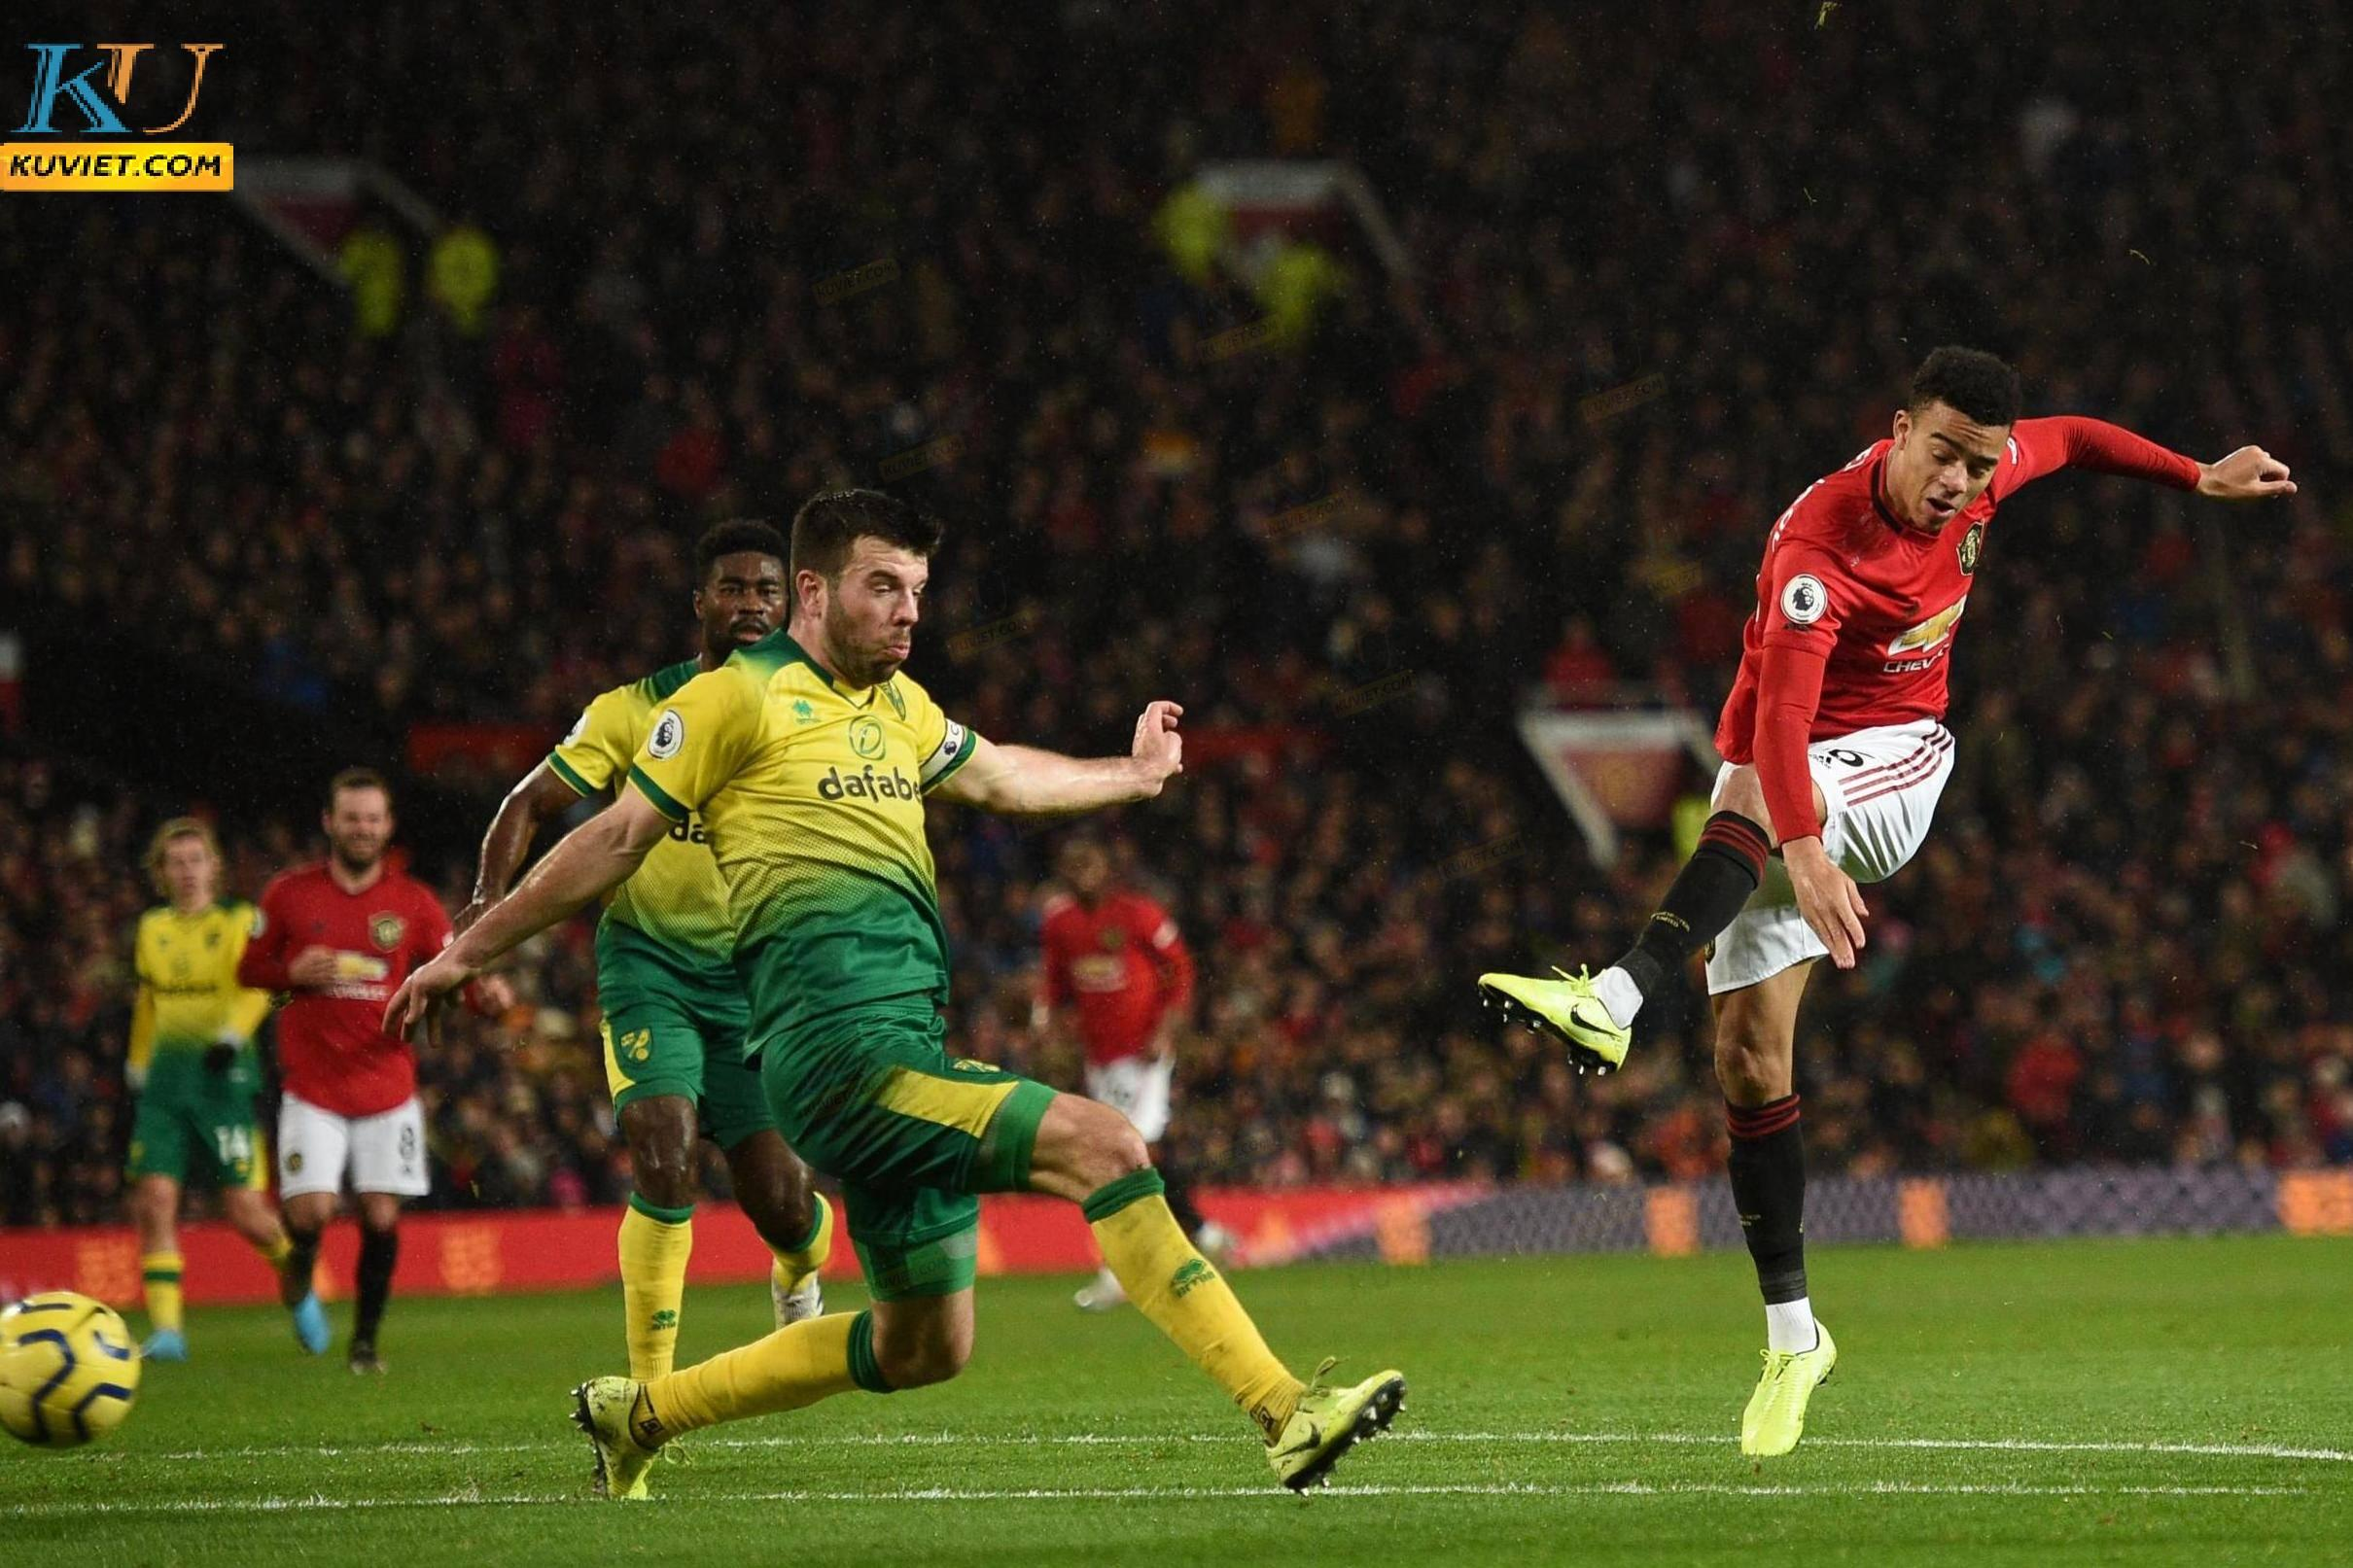 Soi-keo-Norwich-vs-Manchester-United-23h30-ngay-27-06-2020